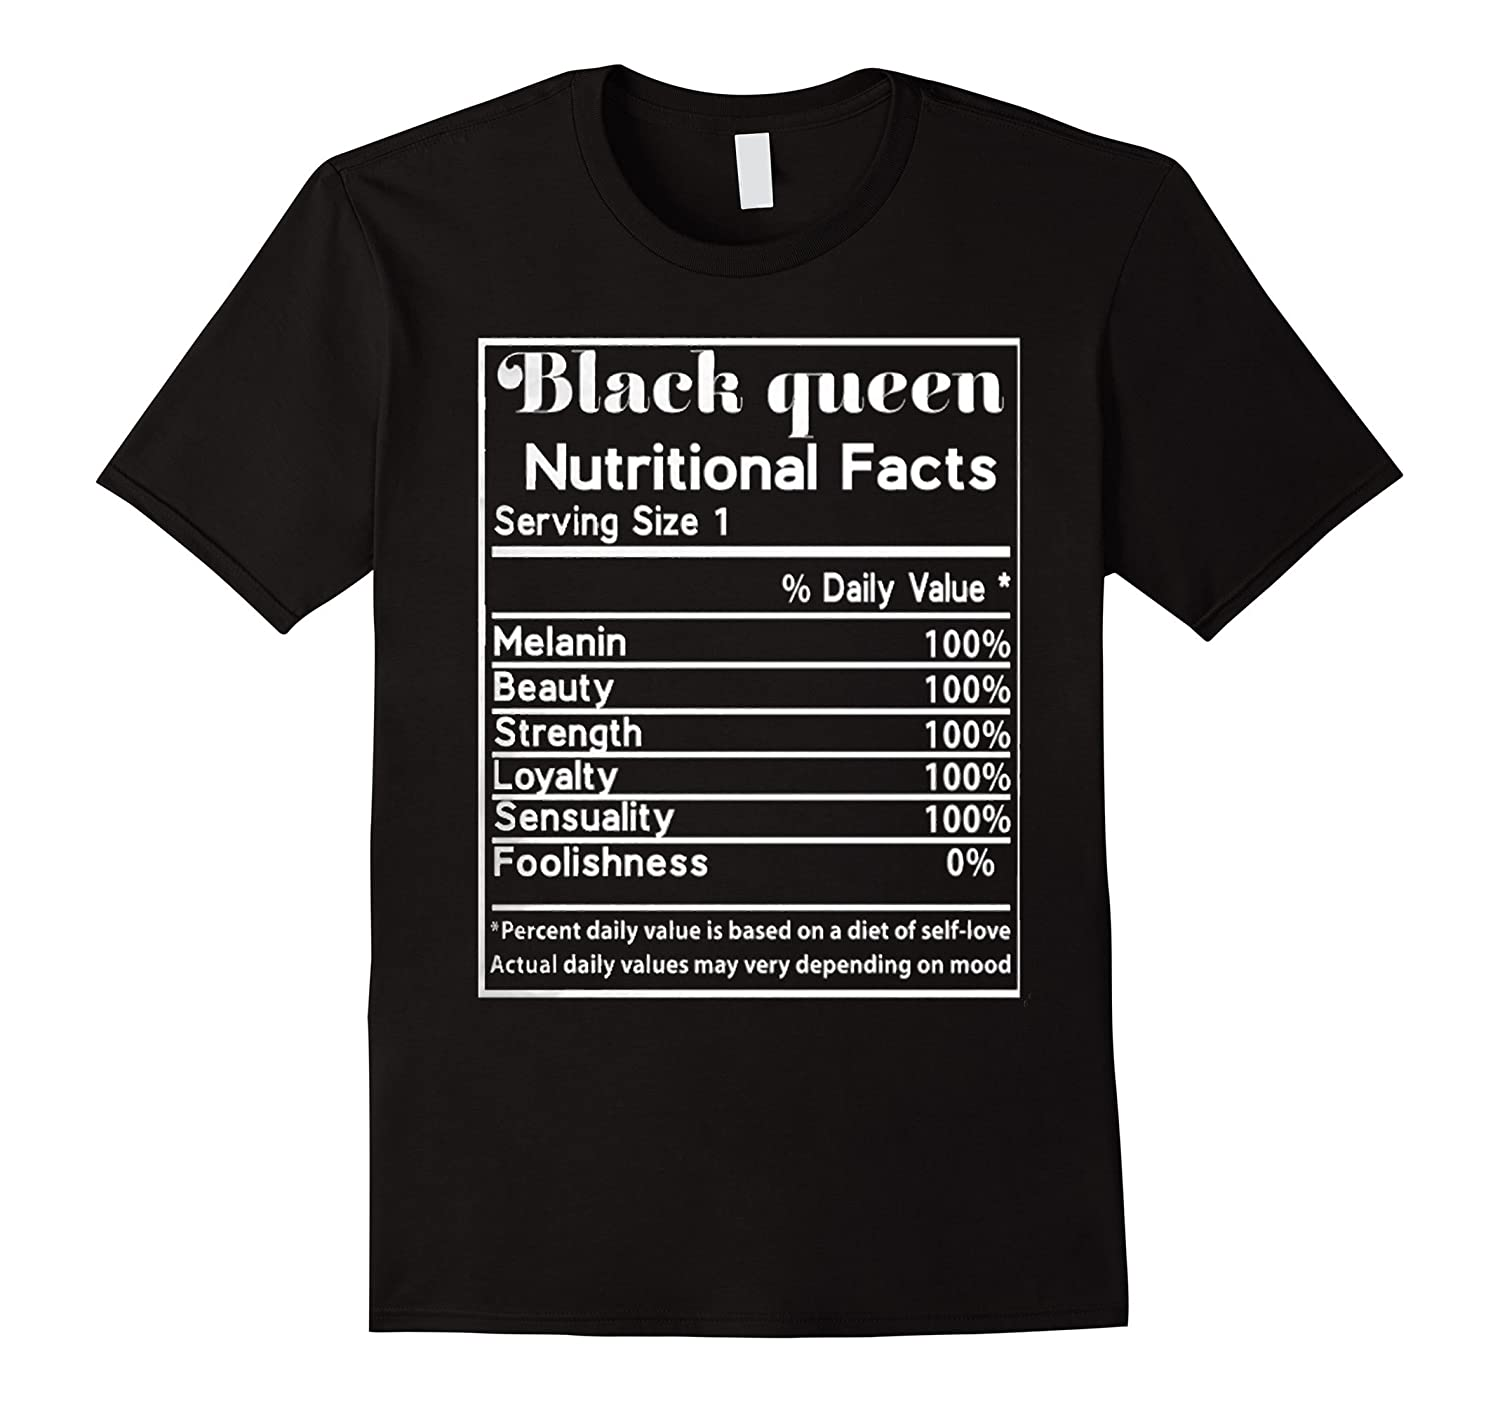 Black queen t shirt - Black Queen T Shirt 4